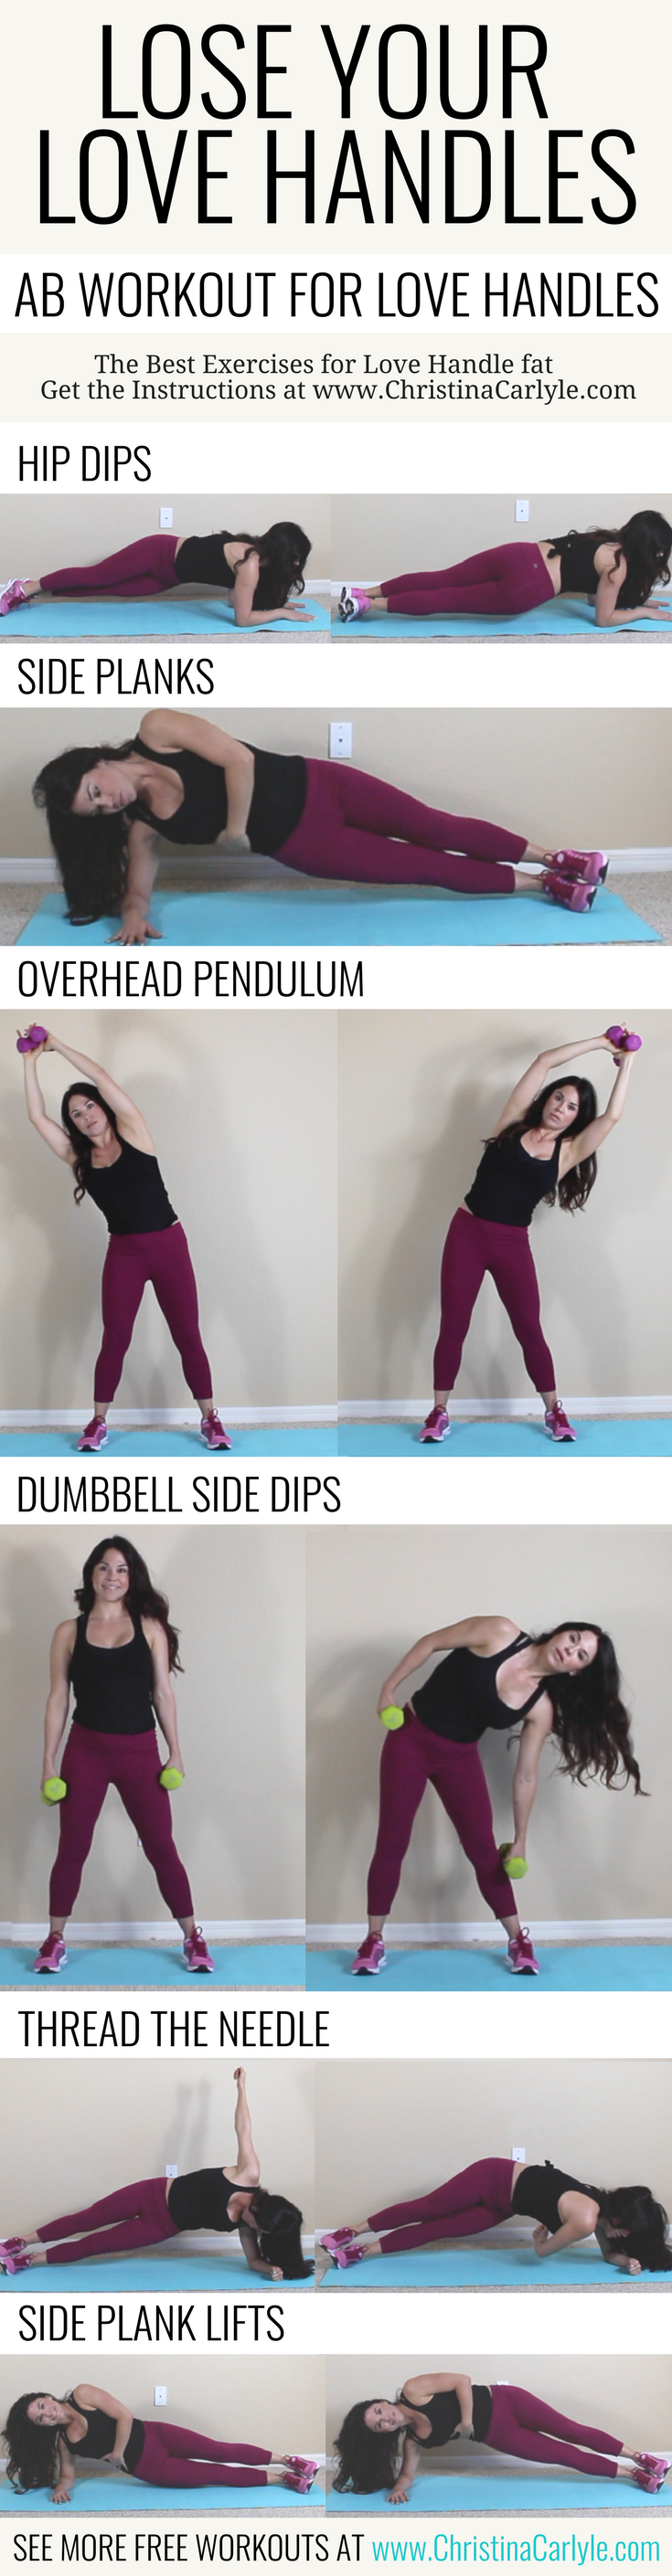 Love Handle Exercises  Pinterest  Exercises Workout and Fat